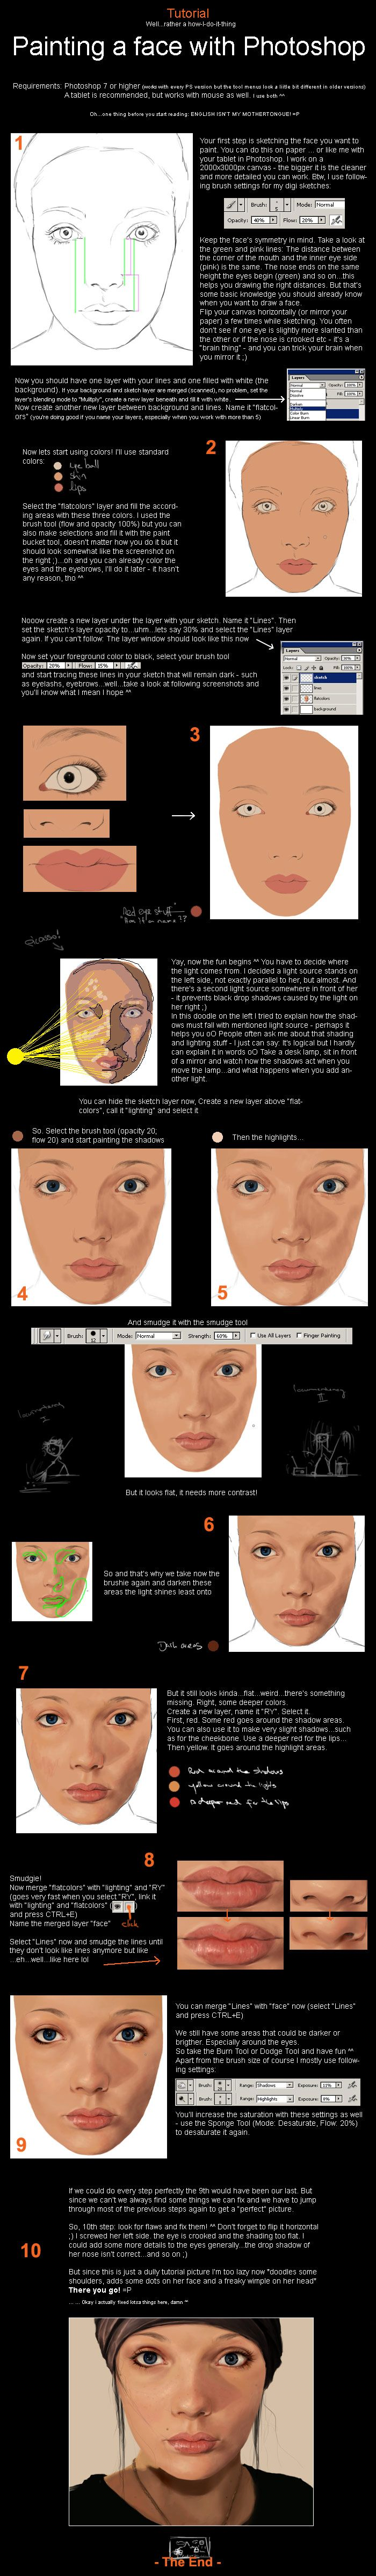 Photoshop – Painting a Face | Tutorials